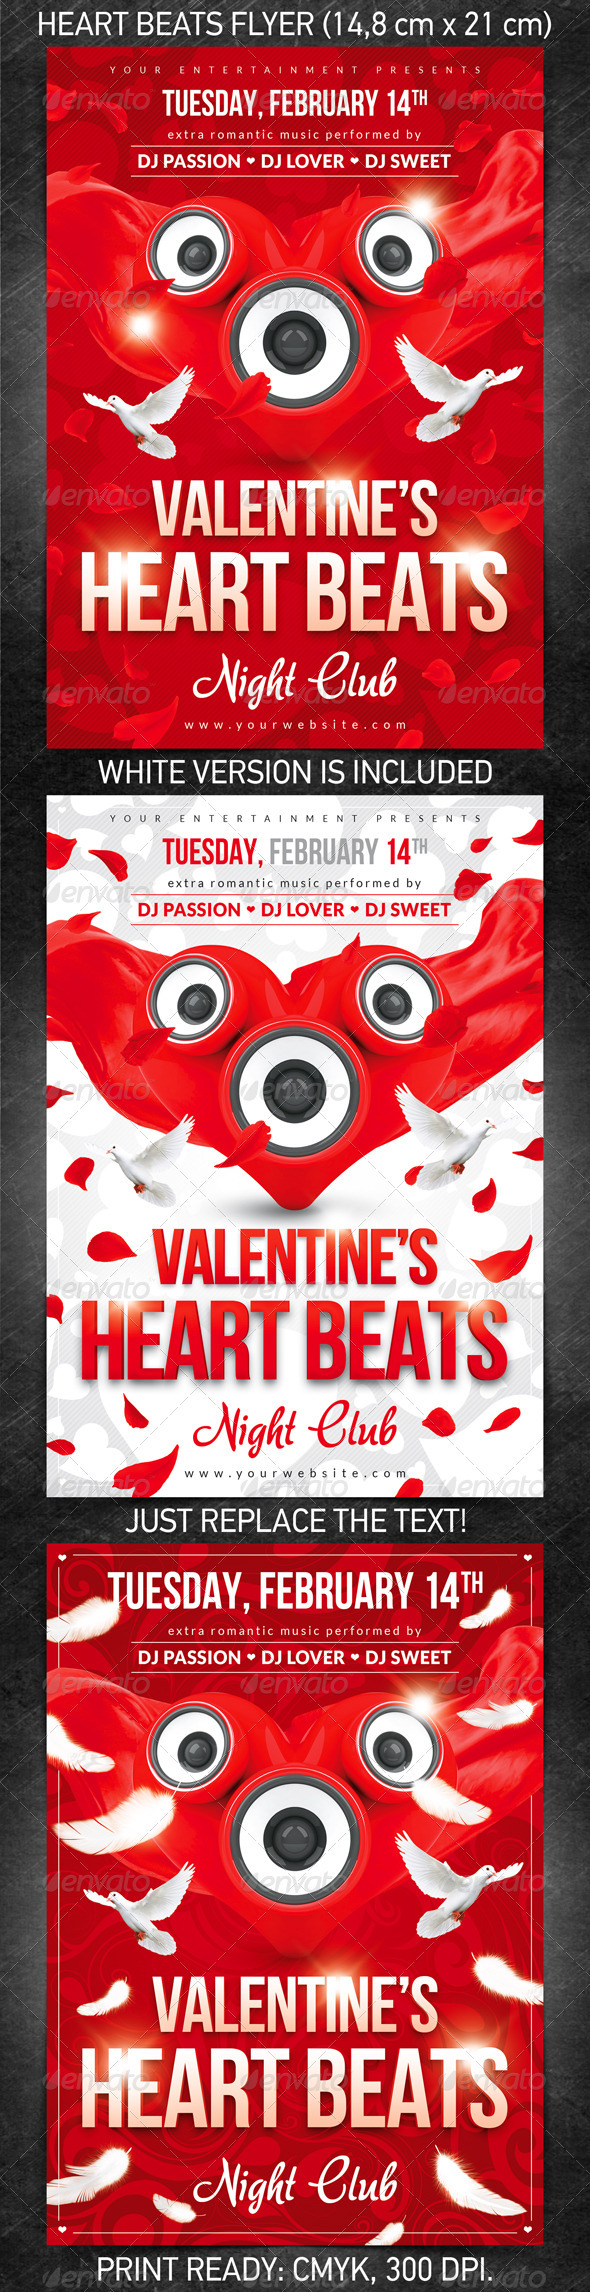 GraphicRiver Heart Beats Flyer 1367563